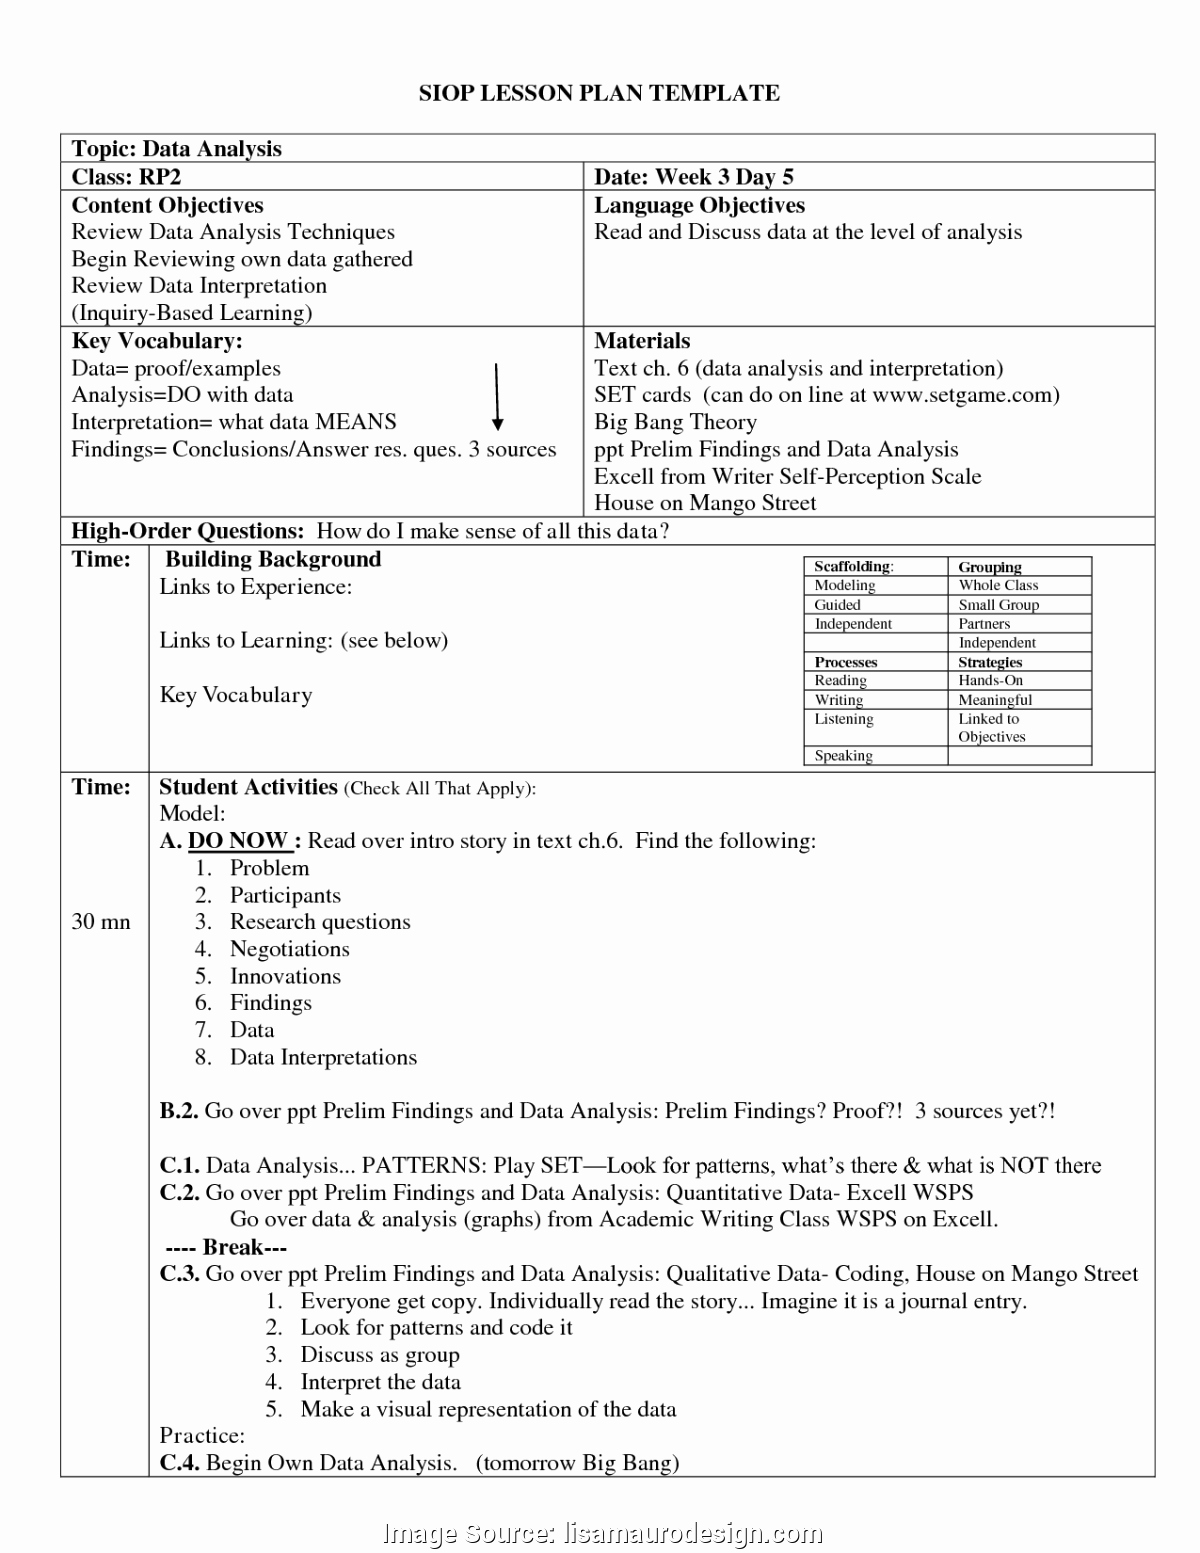 plex lesson plan templates high school english language art lesson coloring visual plan template daily 2 pdf 9